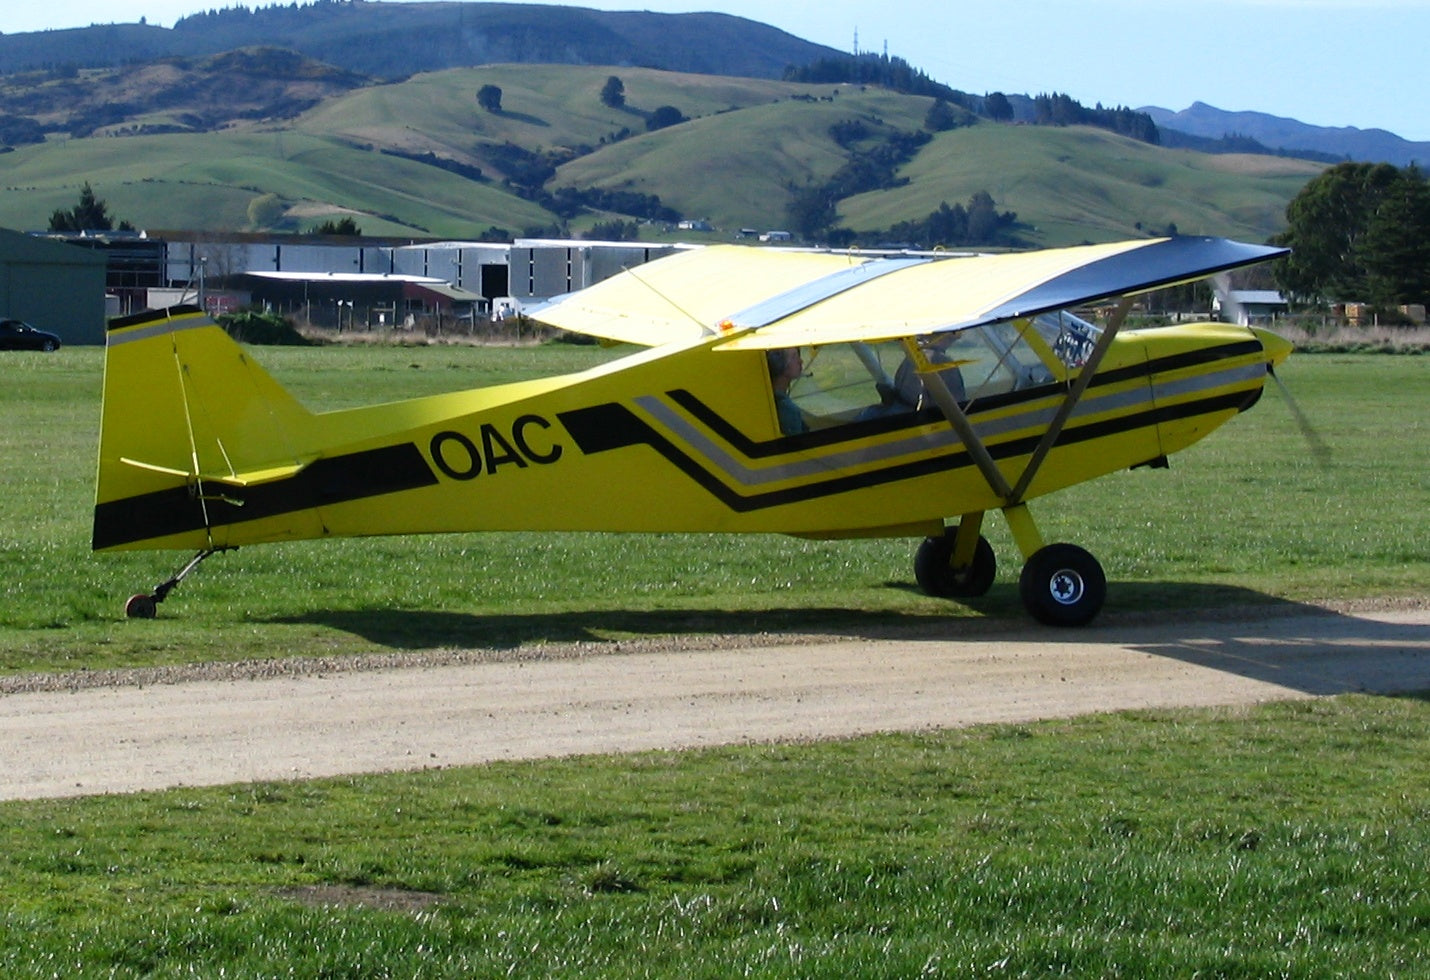 Rans S-7 Courier